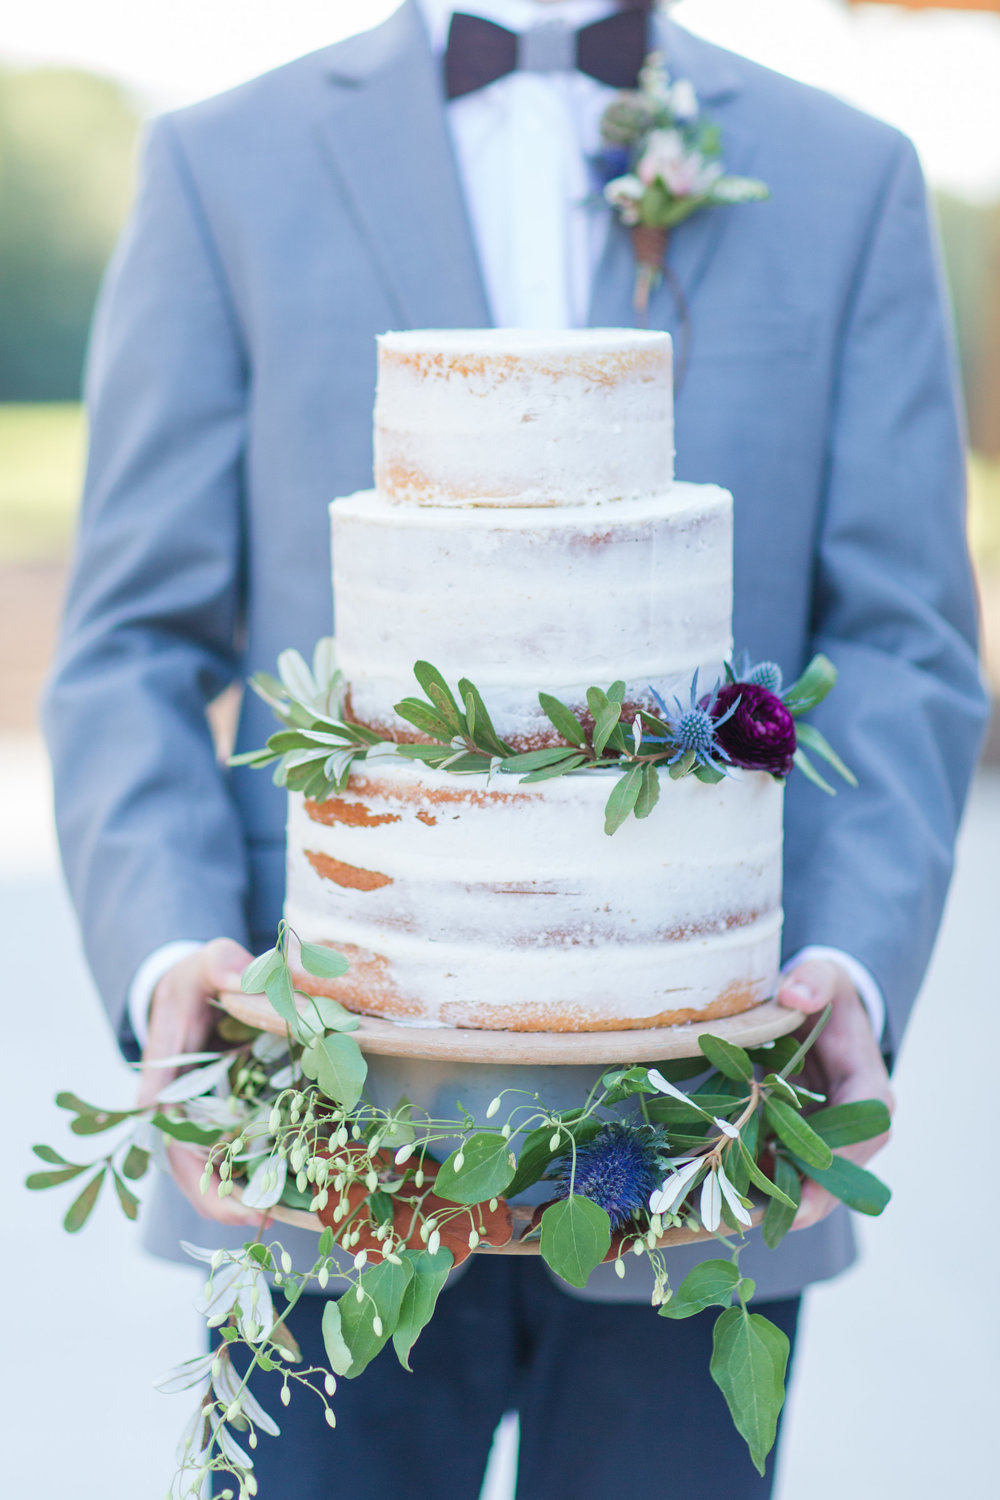 country-lane-lodge-adel-iowa-wedding-venue-white-lace-dress-purple-red-lush-bouquet-planned-by-mostly-becky-weddings-ceremony-lodge-wedding-chandelier-cowhide-sweetheart-table-barn-table-lodge-wedding-groom-cake-bowtie-blue-suit-naked-cake